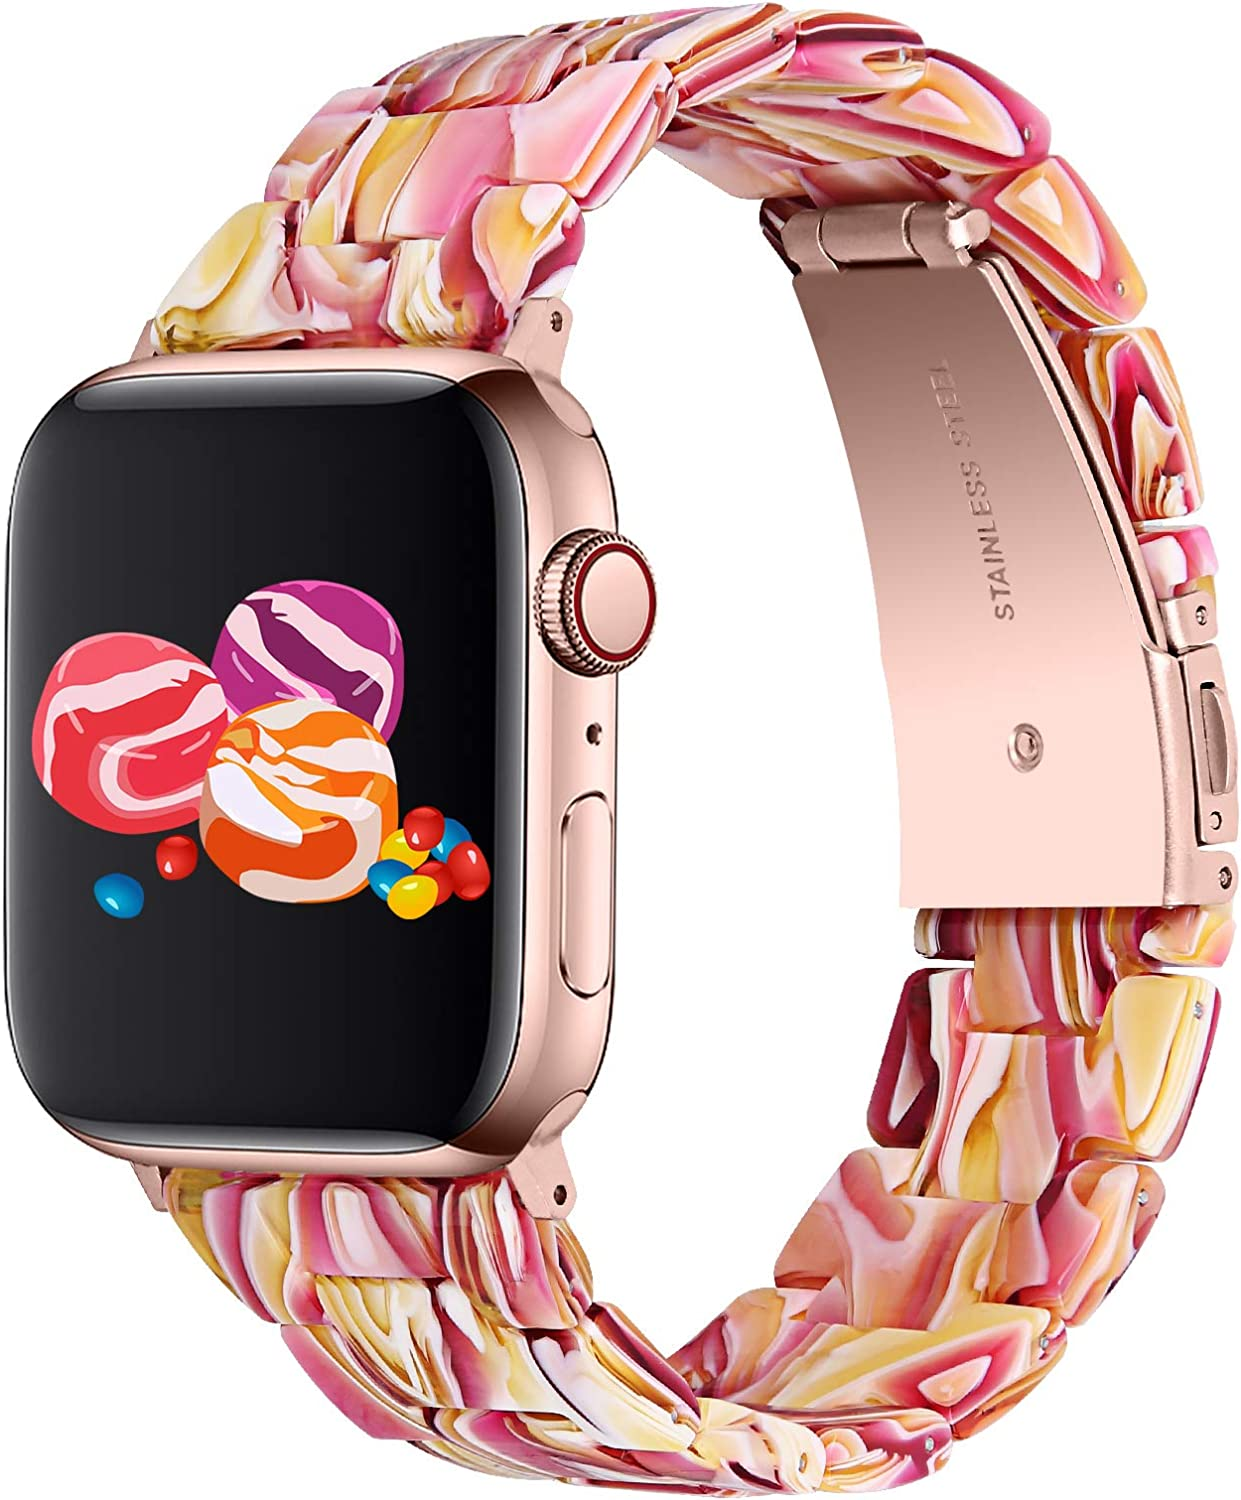 Apple Watch Bands,Fashion Resin iWatch Bands Bracelet Compatible with Stainless Steel Buckle for 40mm 38mm 44mm 42mm Apple Watch Series 6 / SE / 5/4, Series 3 2 1 (Facebook Red, 38mm/40mm)